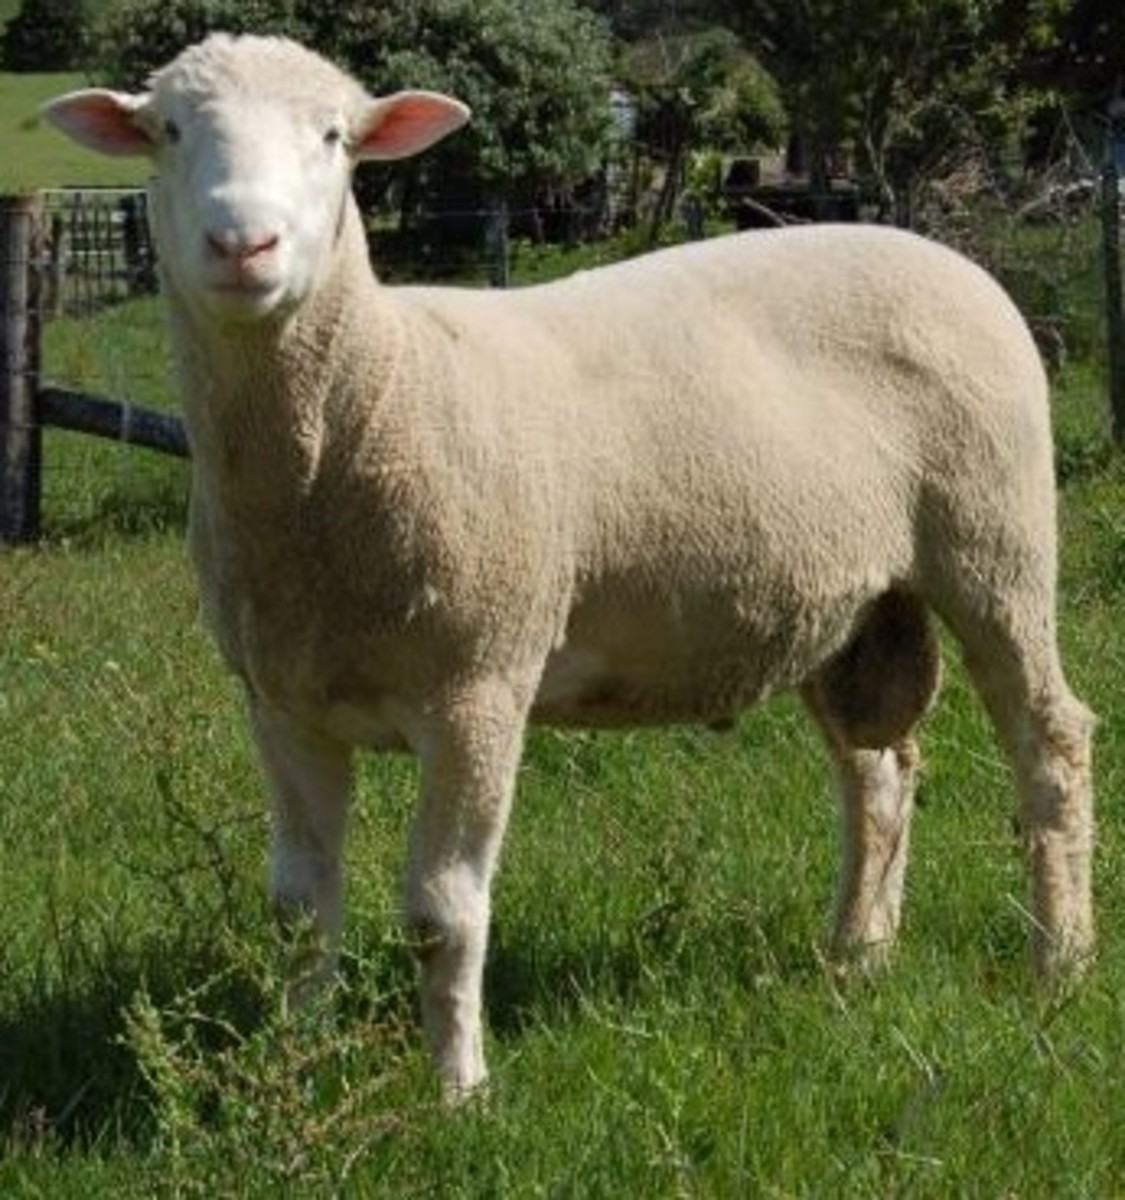 A Dorset ram of the polled (without horns) variety